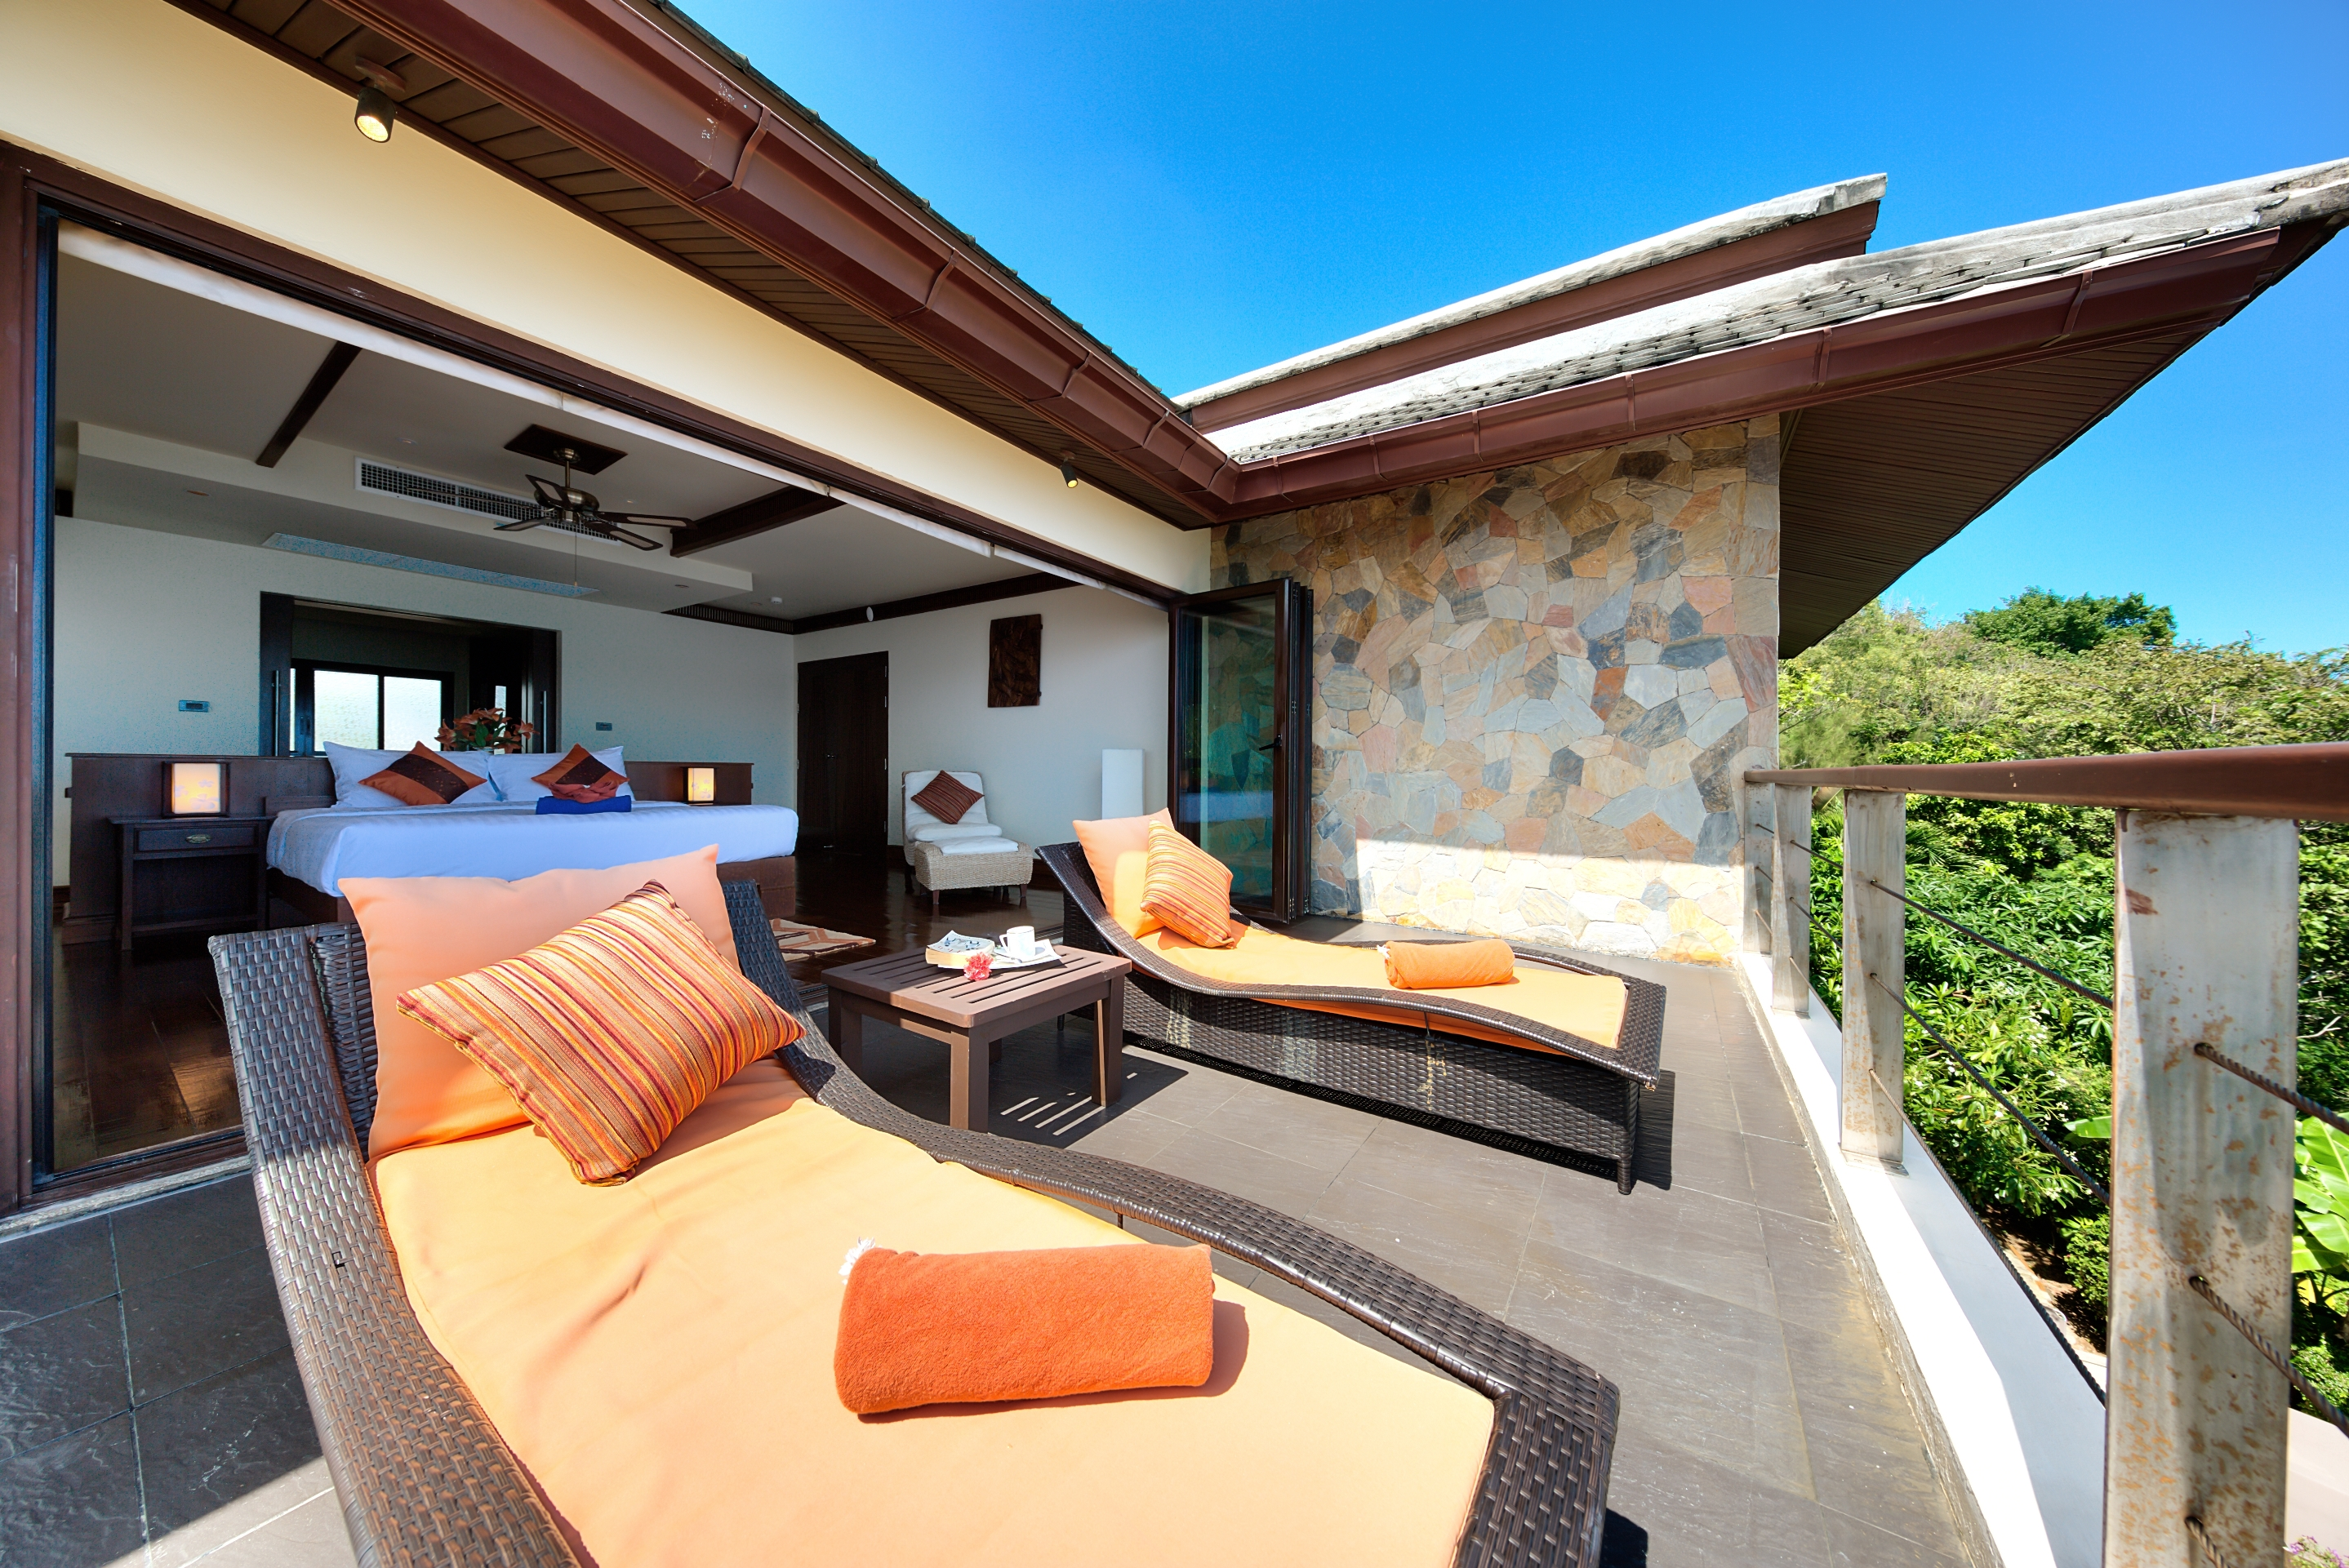 Bathroom - Luxury Garden Villa For Sale In Lipa Noi Close To The Beach - Koh Samui